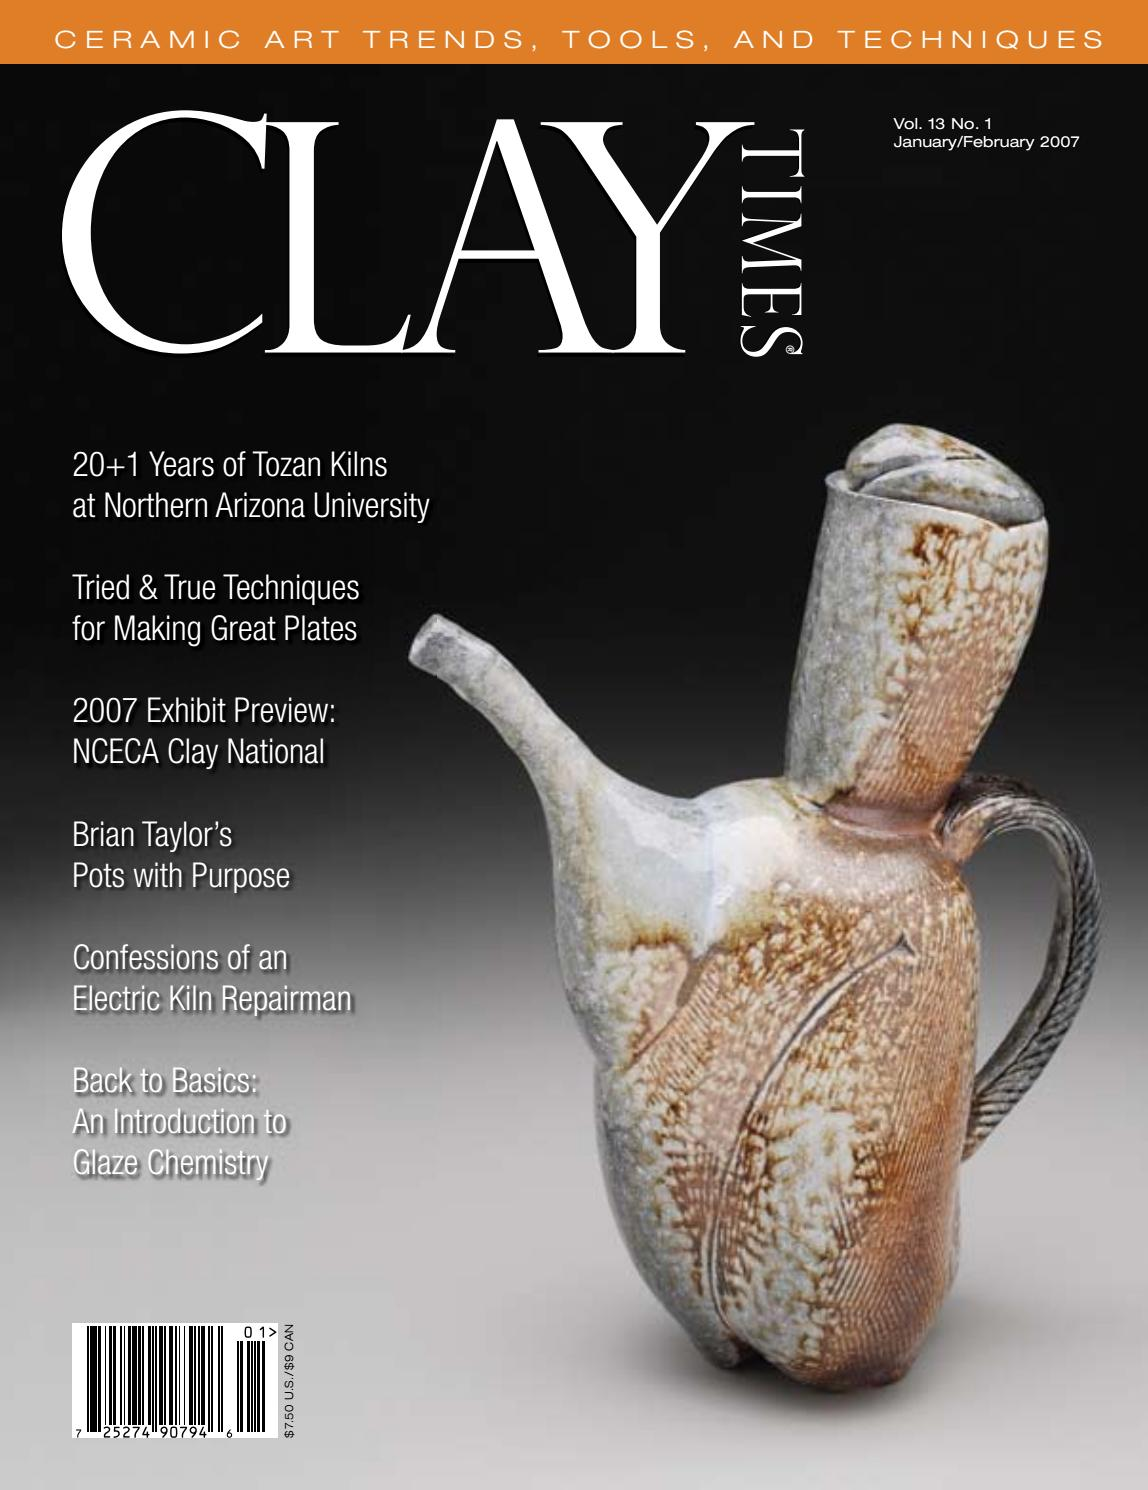 Clay Times Magazine Volume 13 Issue 68 By Claytimes Issuu Cord And Plug Safety For Electric Kilns